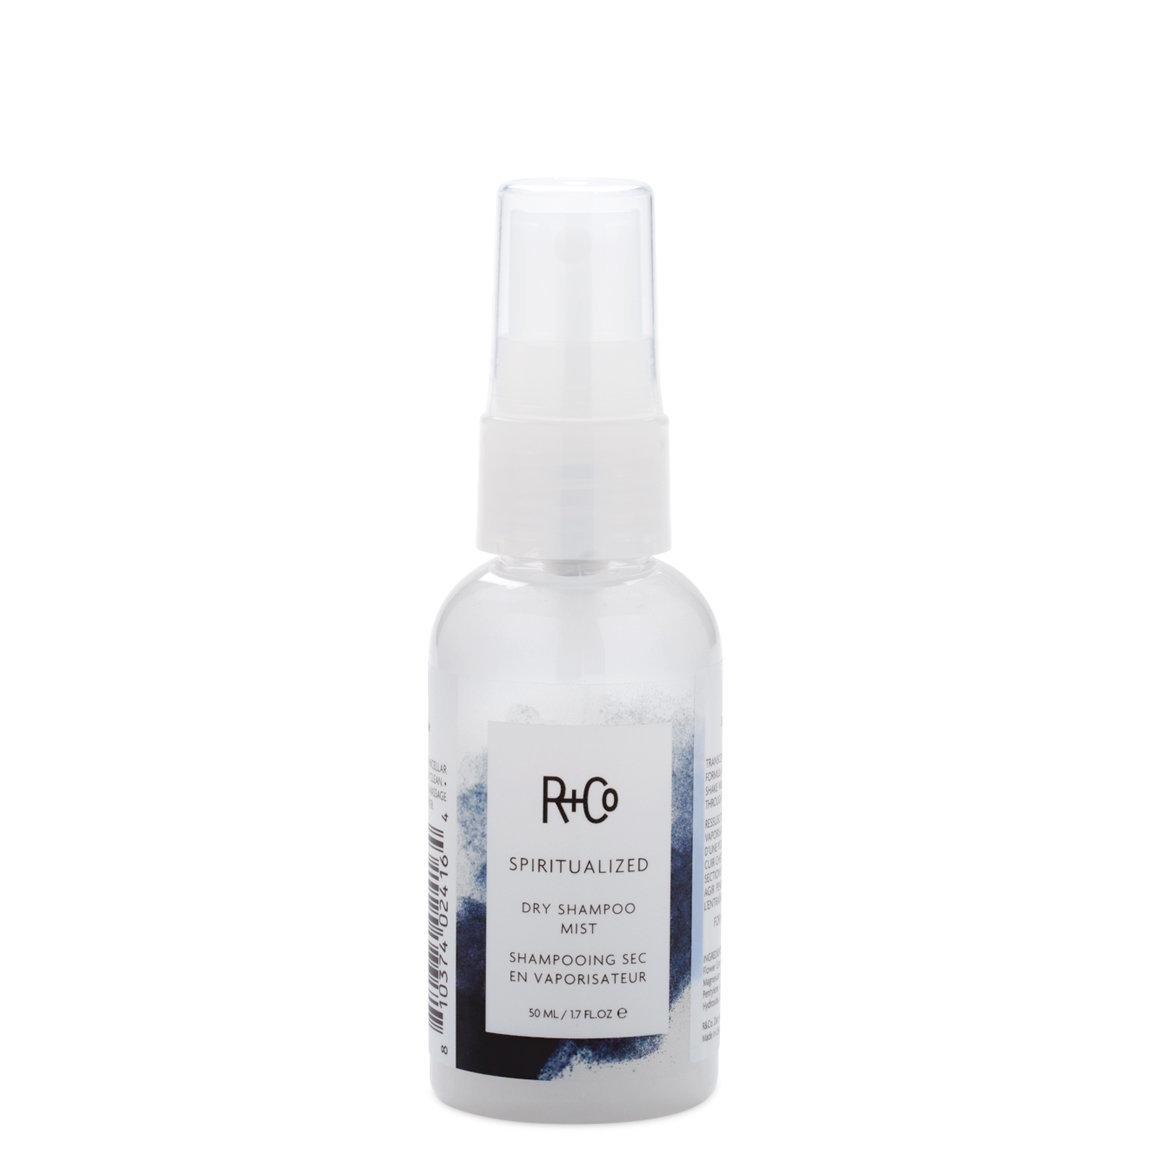 R+Co Spiritualized Dry Shampoo Mist 1.7 fl oz product smear.